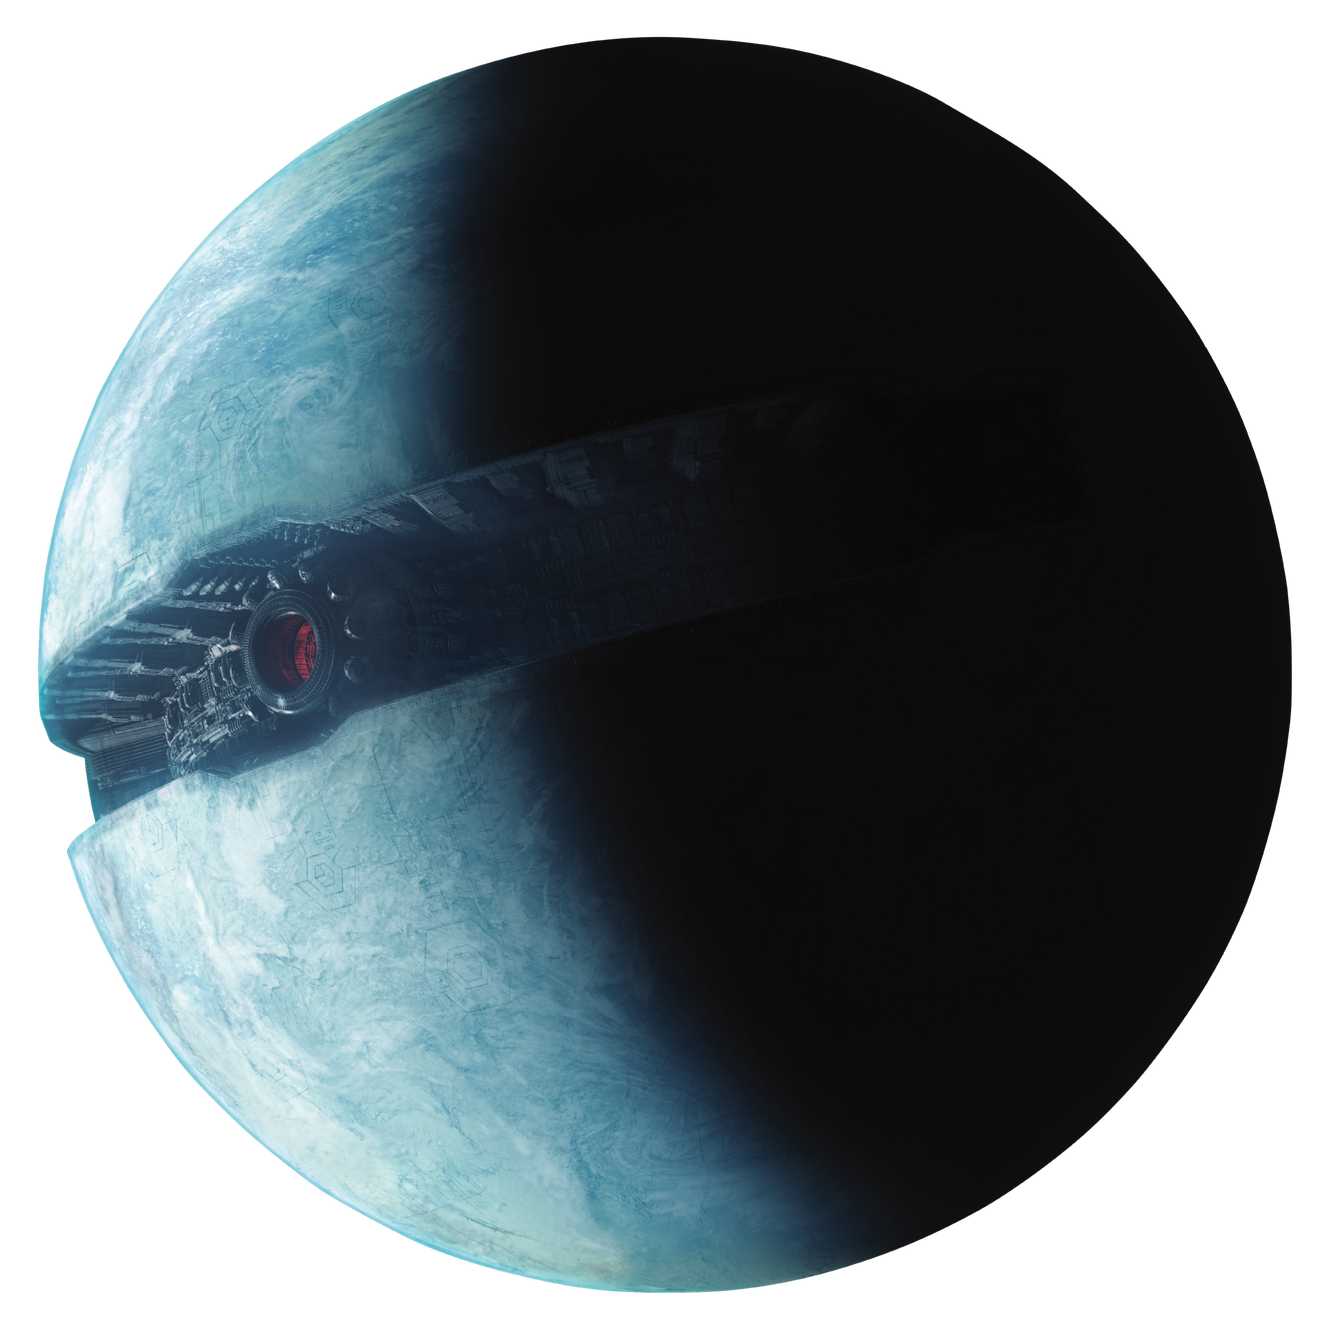 Death star png transparent. General hux starkiller base